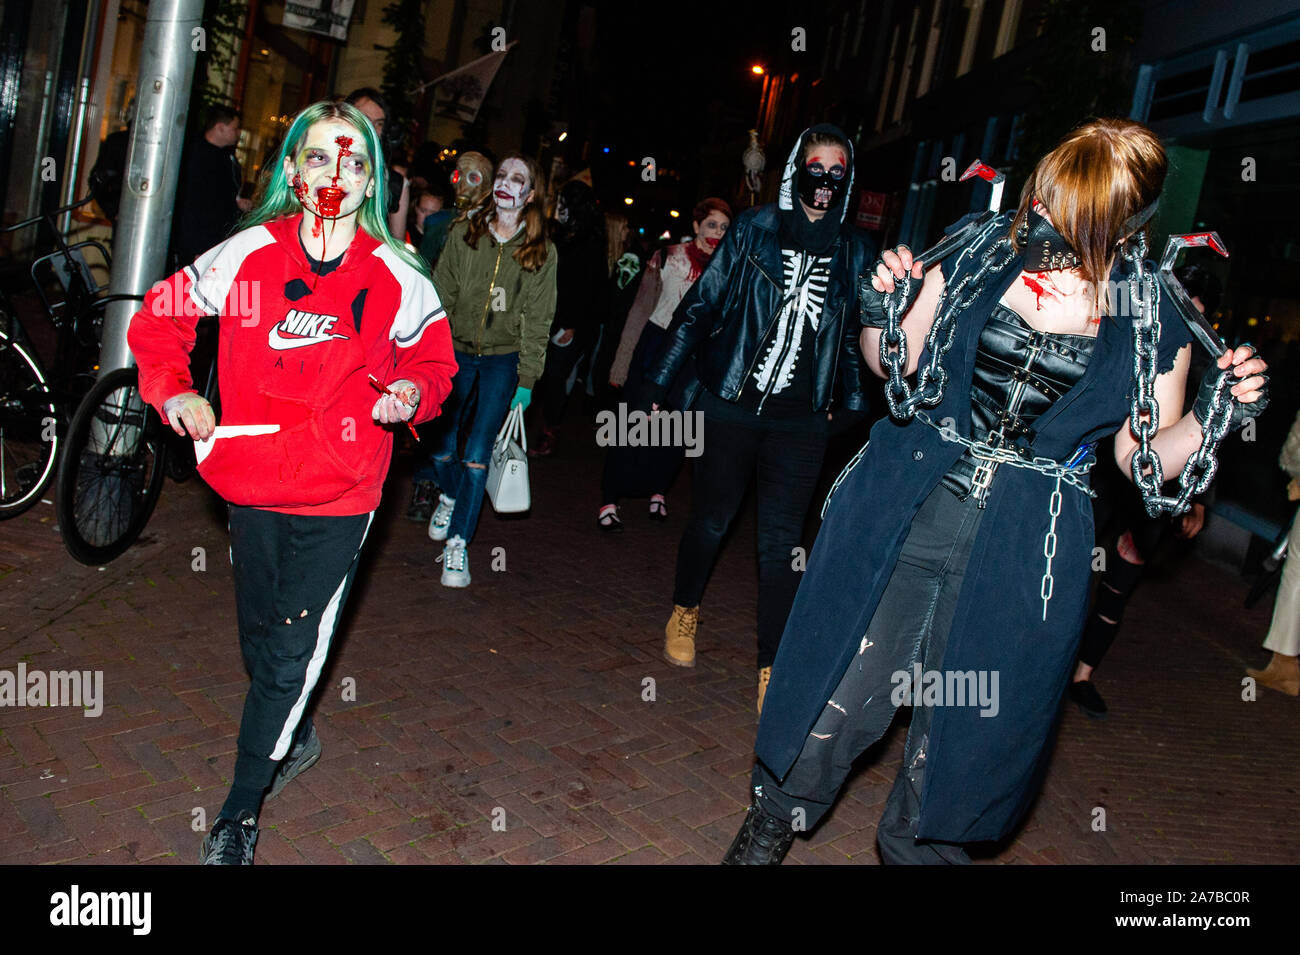 Halloween Arnhem.Arnhem Netherlands 31st Oct 2019 Zombies Are Seen Walking On The Street During The Parade As